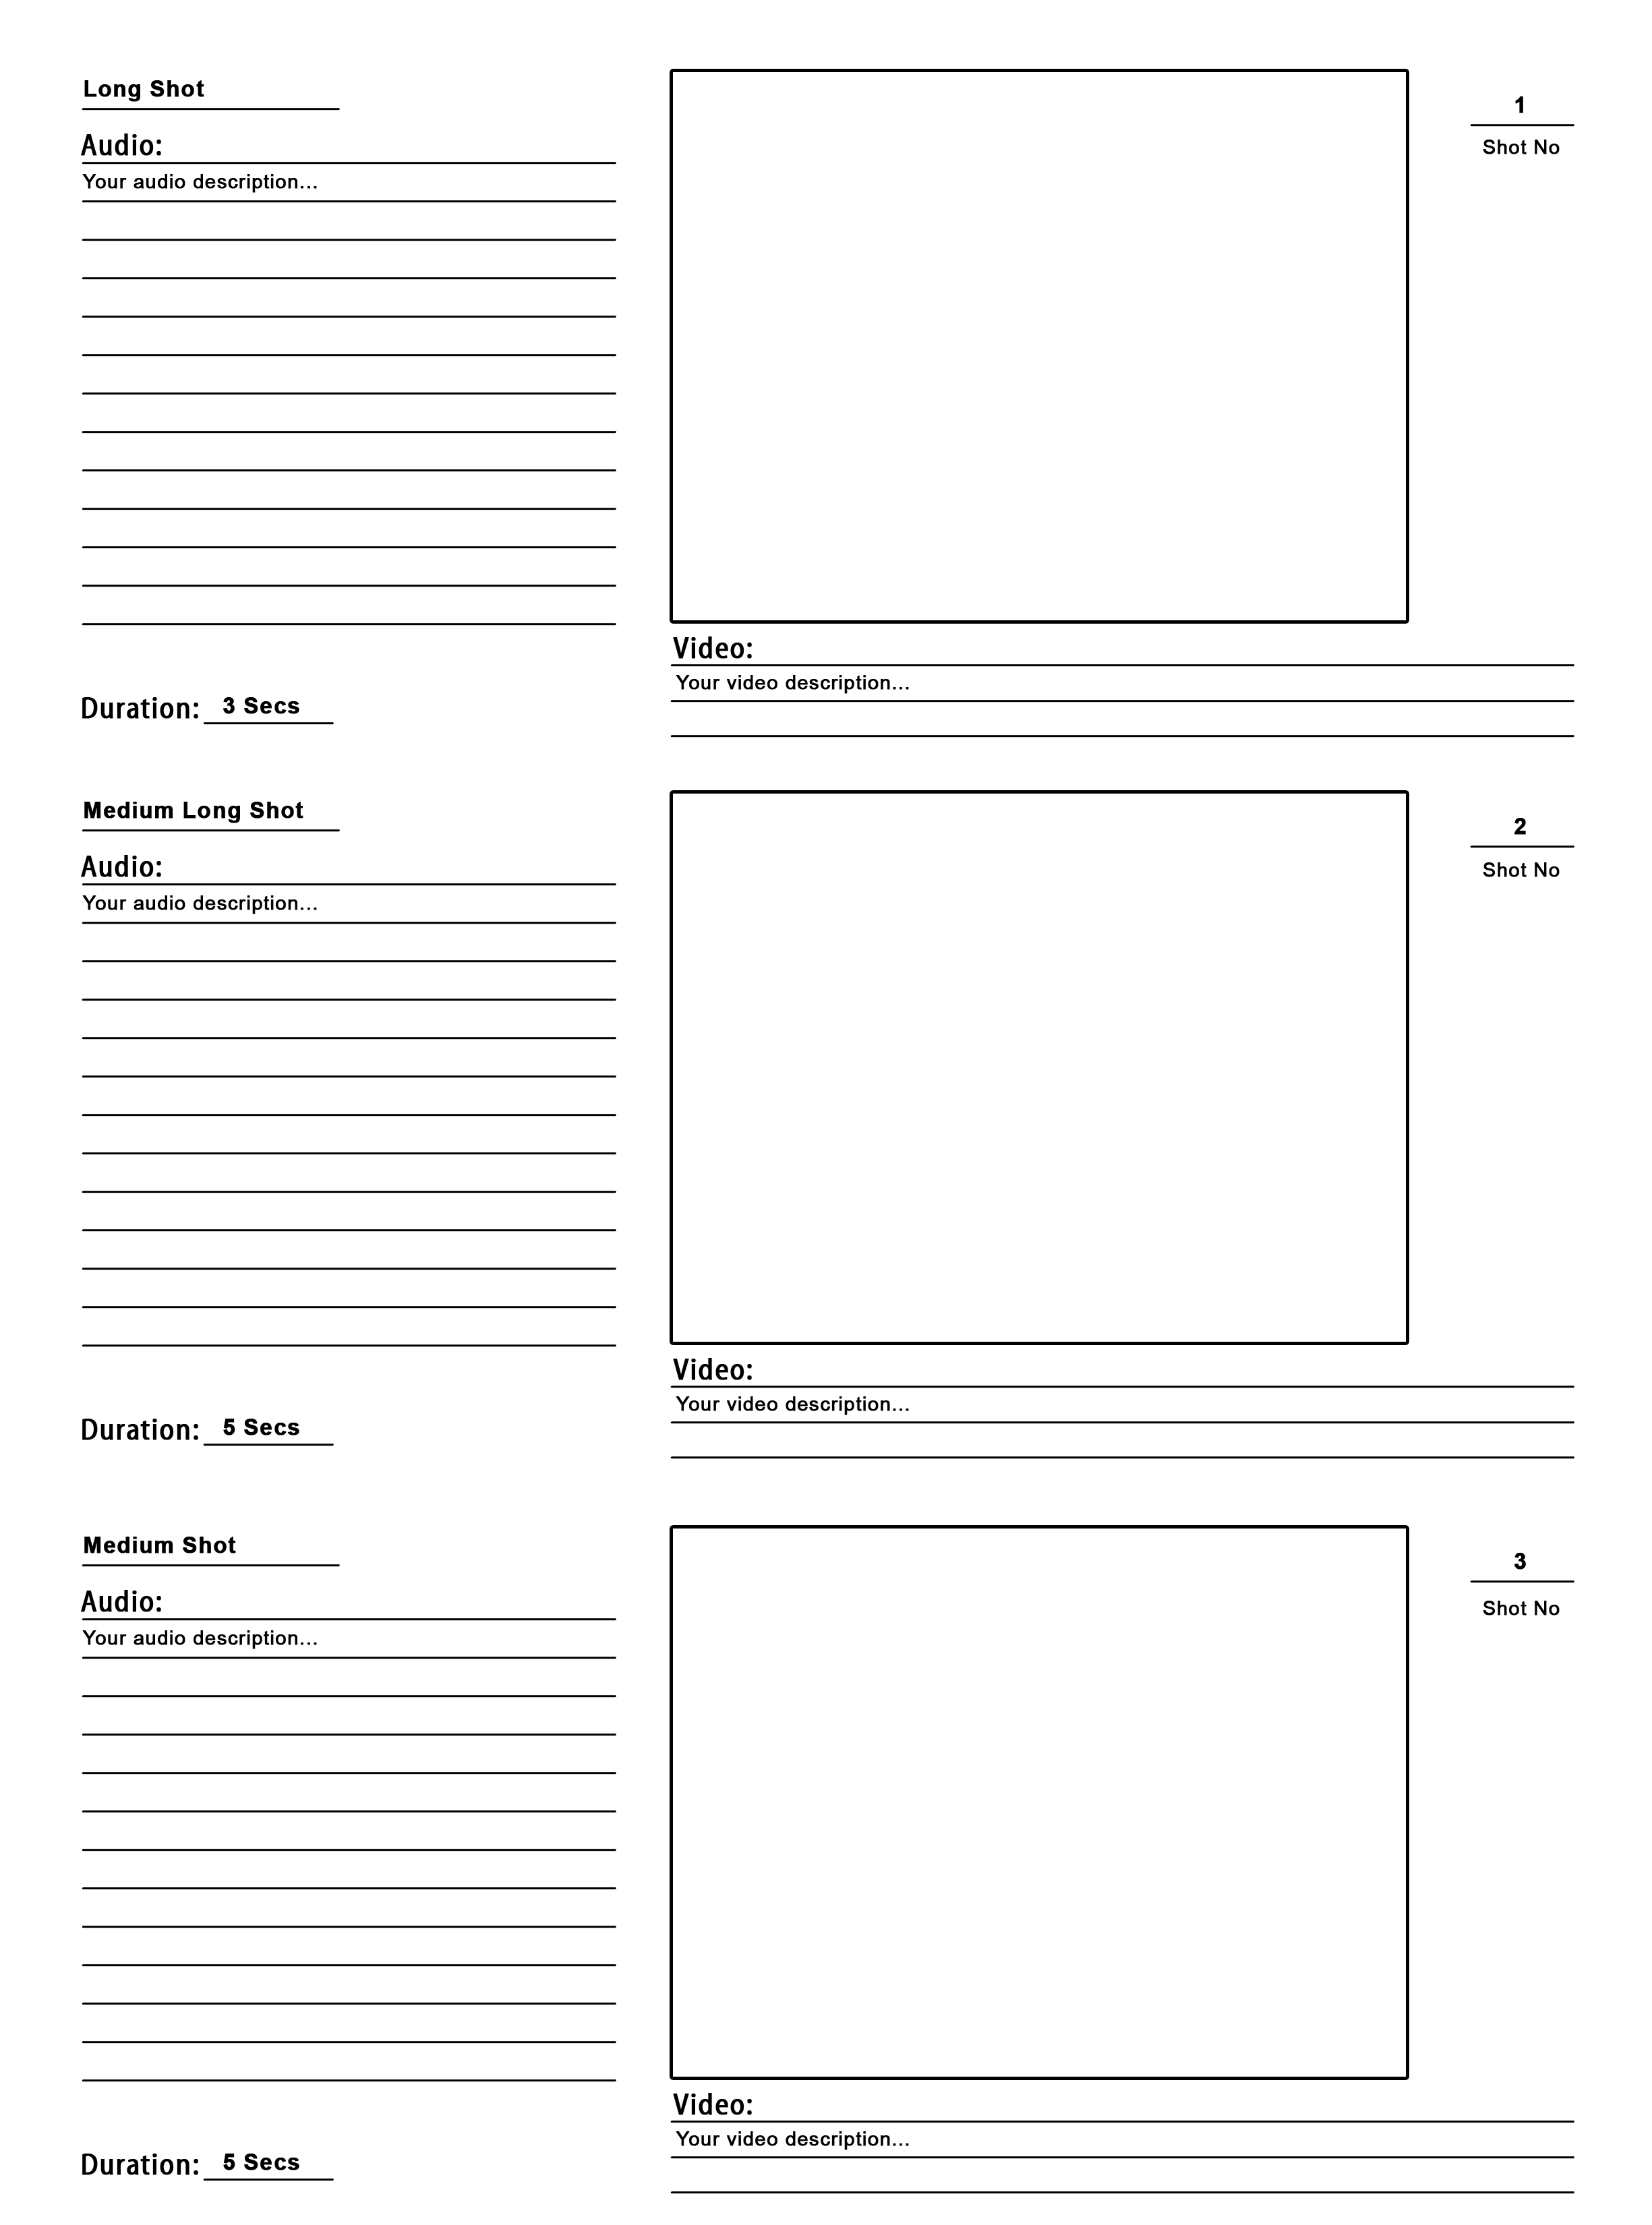 Storyboard Template Psd For Your Pre Production The Design Work